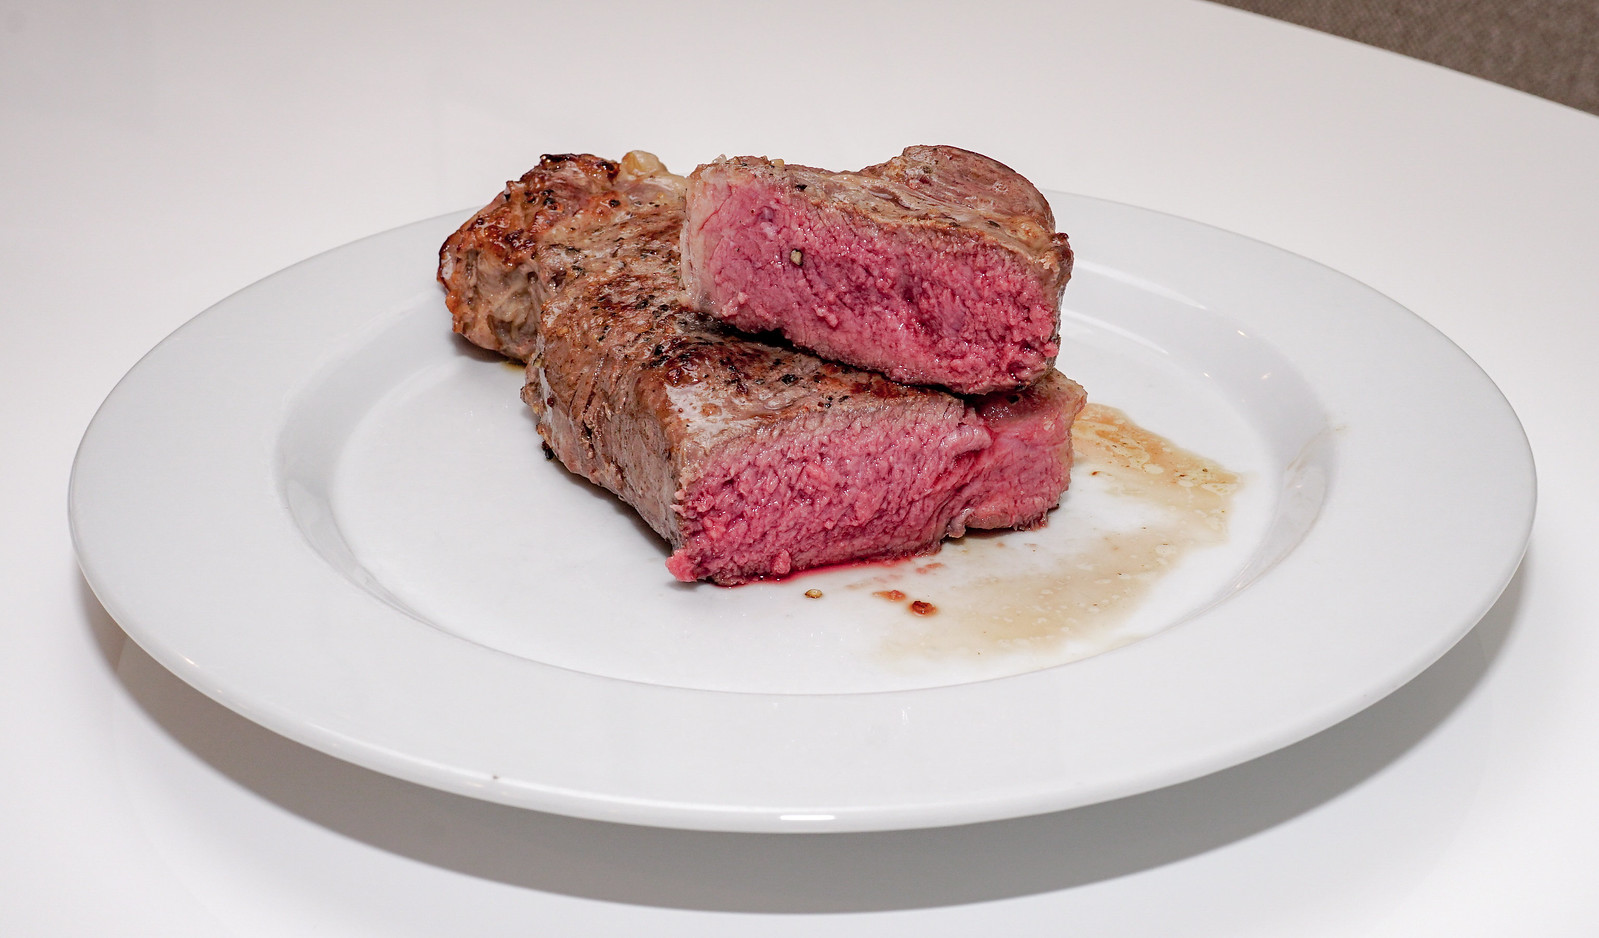 2018.08.01 Grass-Fed Beef, Sous-Vide Technique, Washington, DC USA 05385